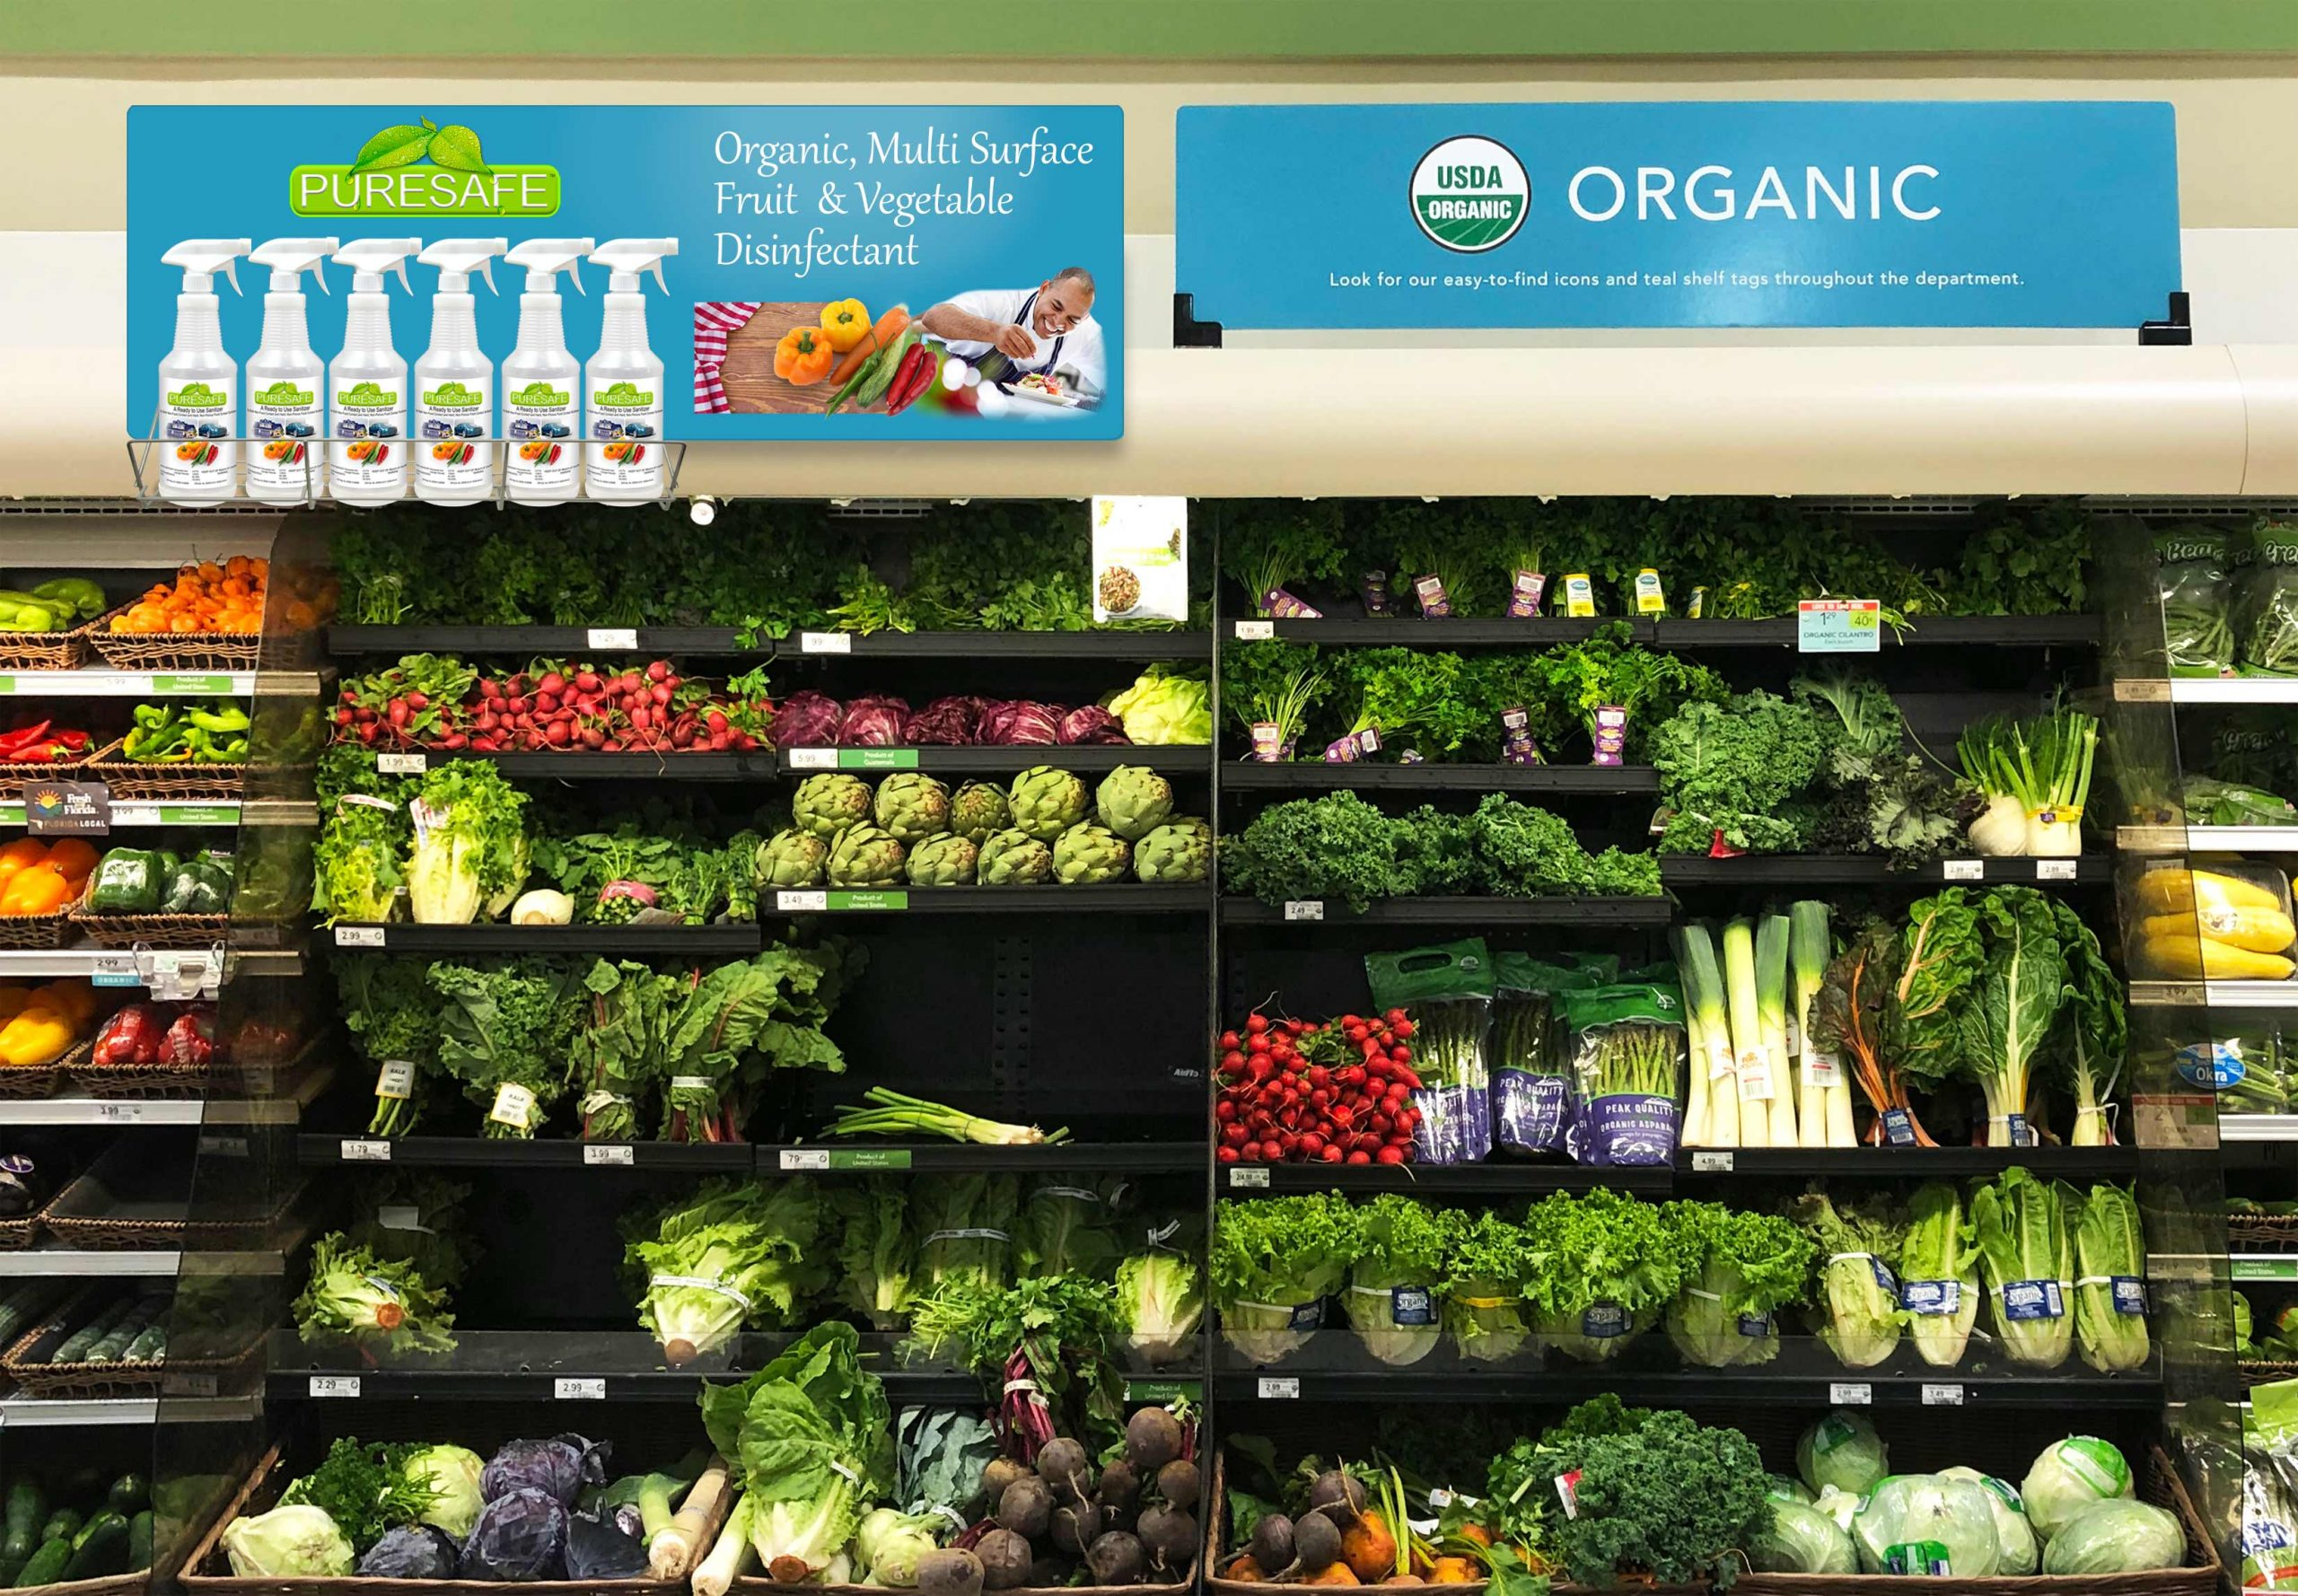 What organic healthy food store near me Sarasota has Puresafe COVID Disinfectant